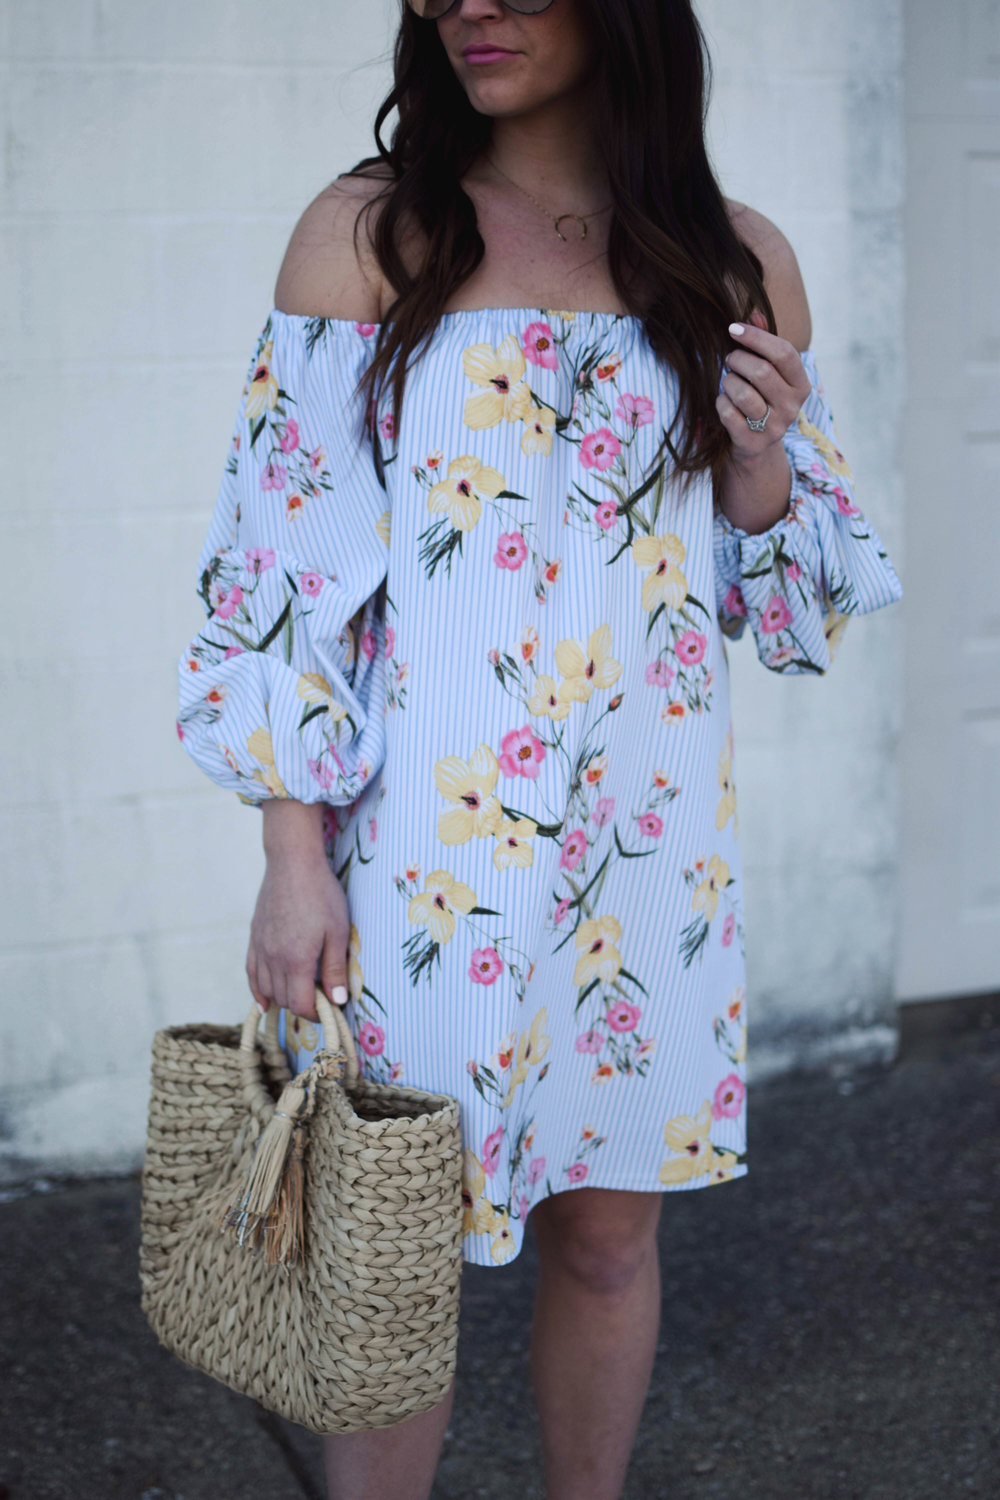 Floral Dress for Easter | Pine Barren Beauty | easter outfit idea, easter dress, floral dress for spring, spring fashion, spring outfit idea, what to wear to a spring wedding